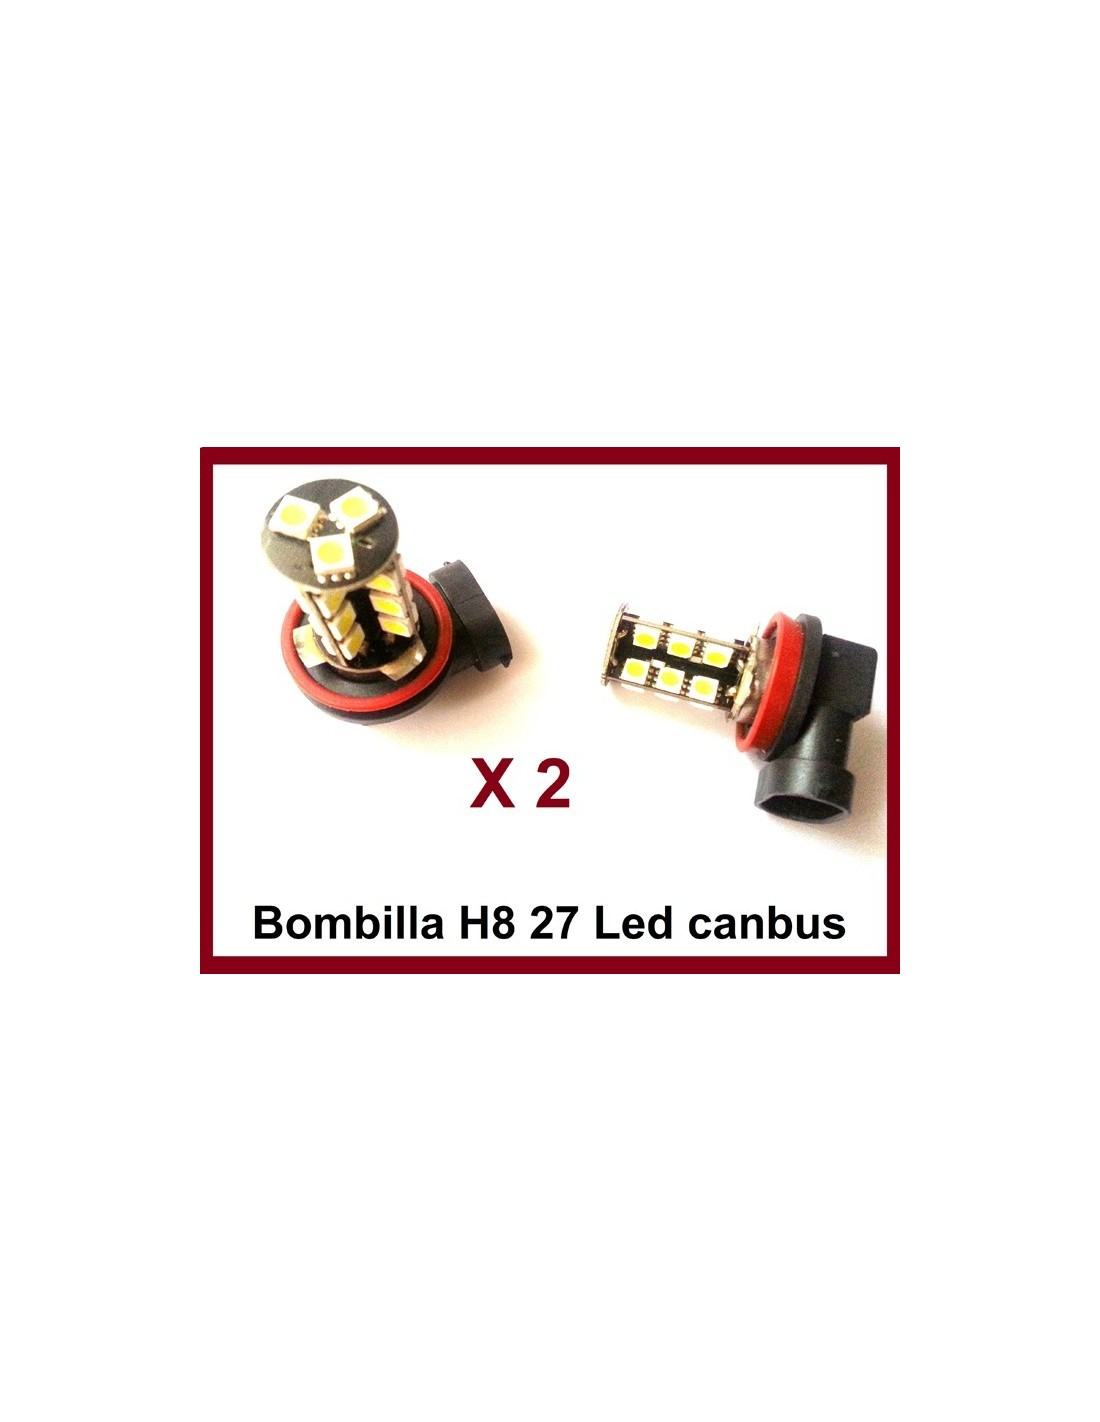 Bombillas H8 27 SMD Canbus